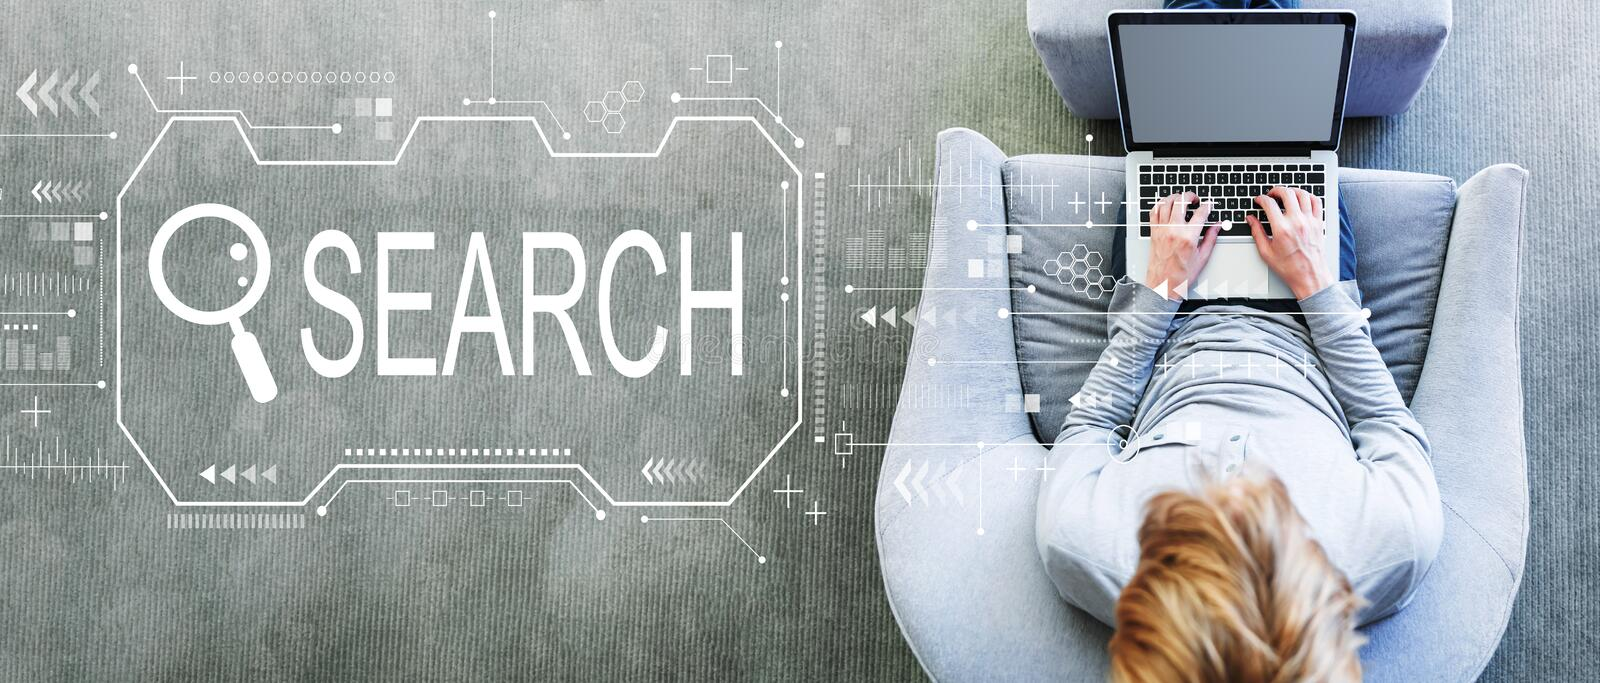 Searching theme with man using a laptop stock photo